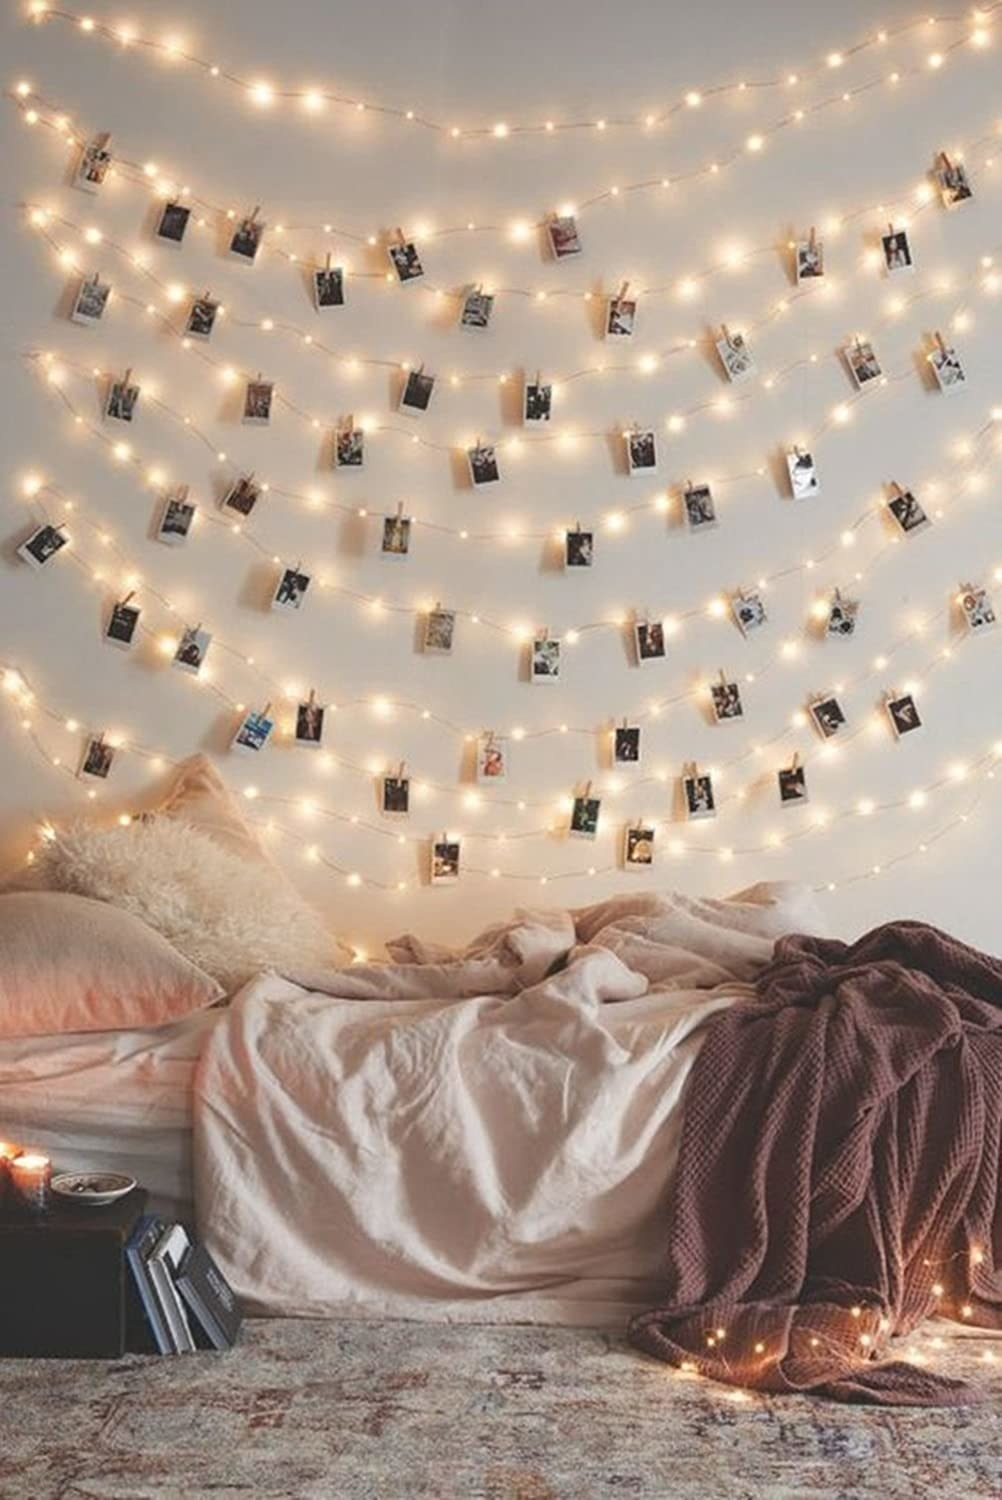 The lights strung up on a wall with Polaroid pictures clipped throughout in a bedroom